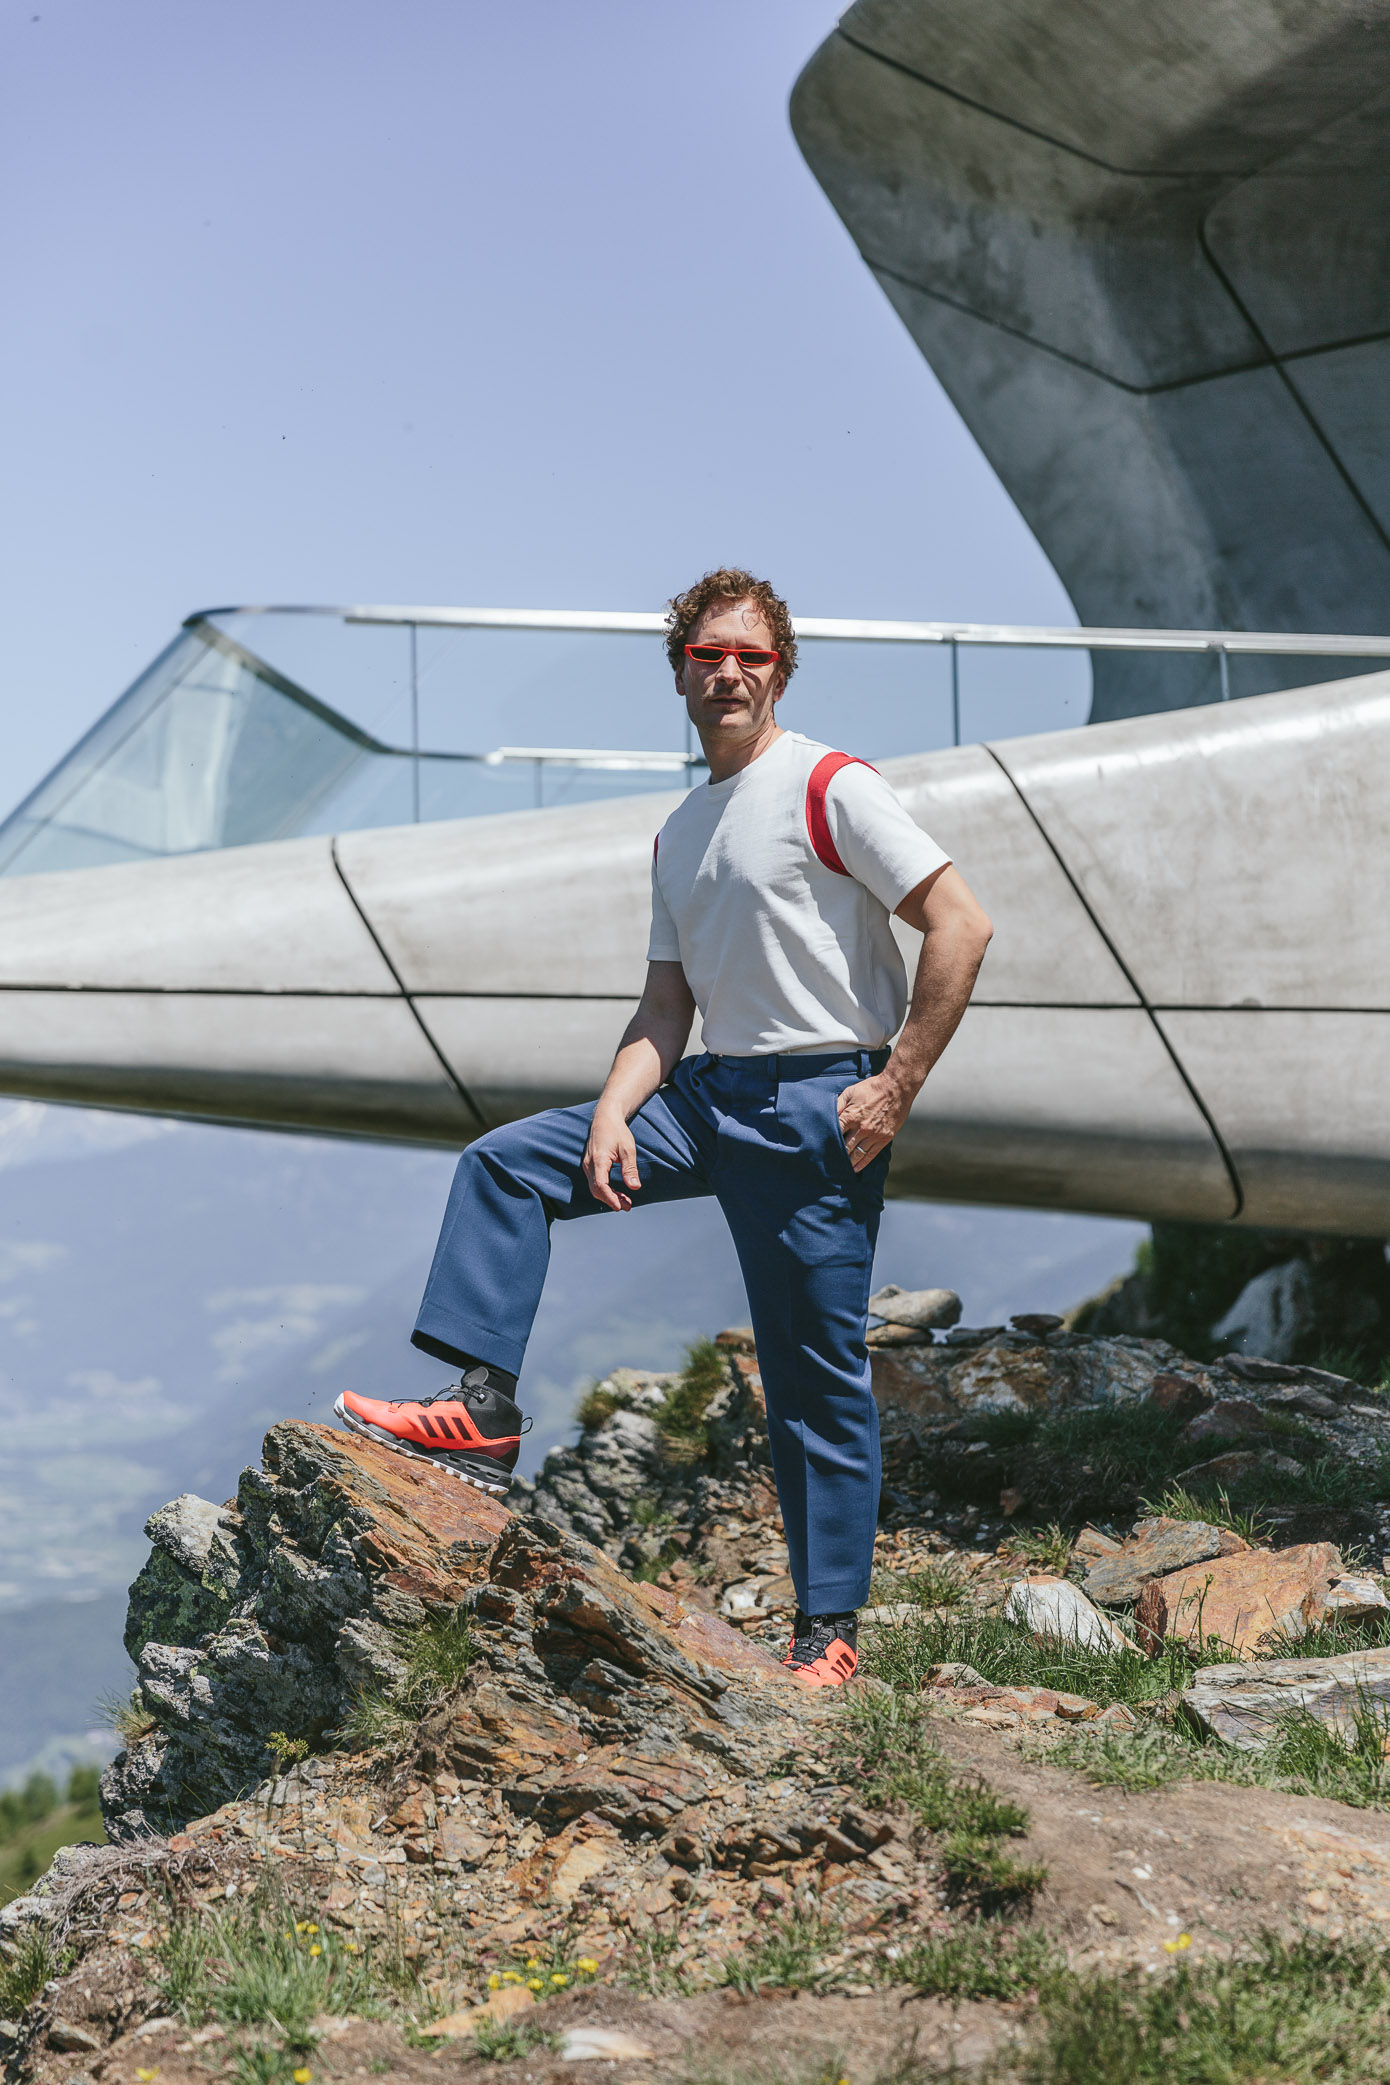 South Tyrol, Messner Mountain Museum, Calvin Klein, Ace & Tate x Cmnn Swdn, Adidas